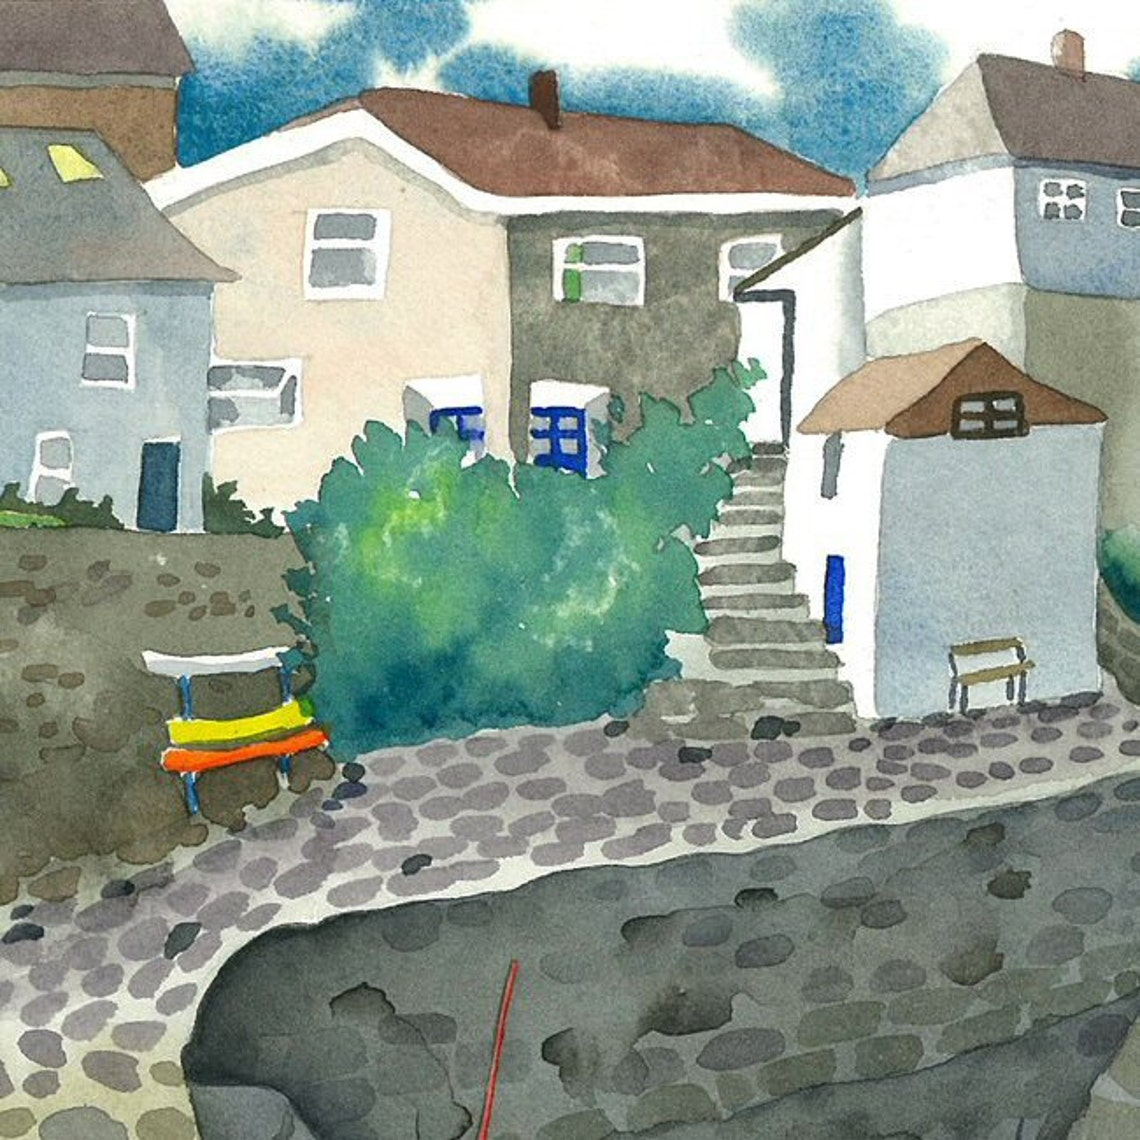 A63 Mousehole in Cornwall - Josephine Chisholm